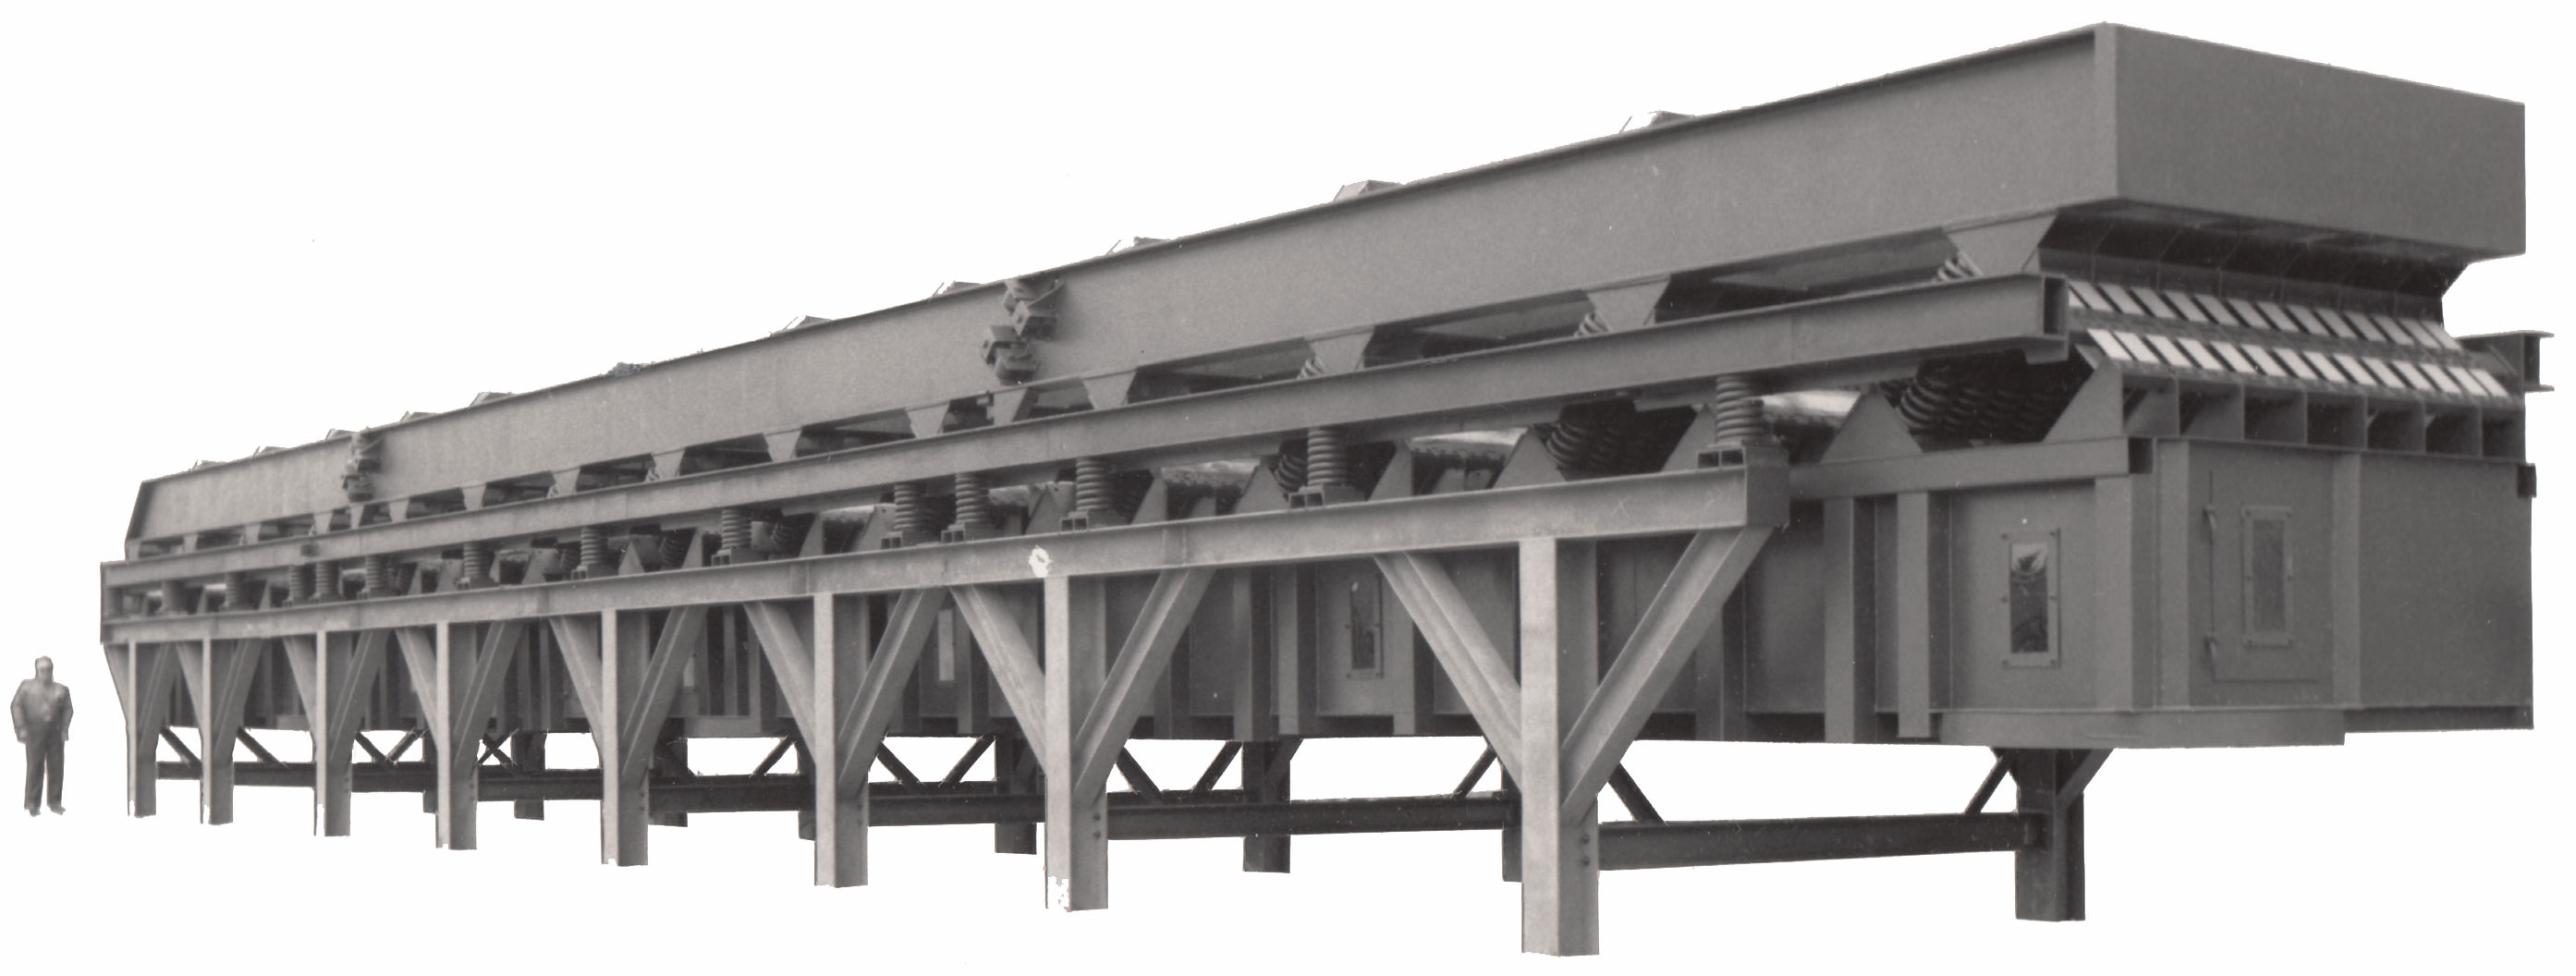 Solid Fuel Distribution Conveyor. It consumes 10 HP.